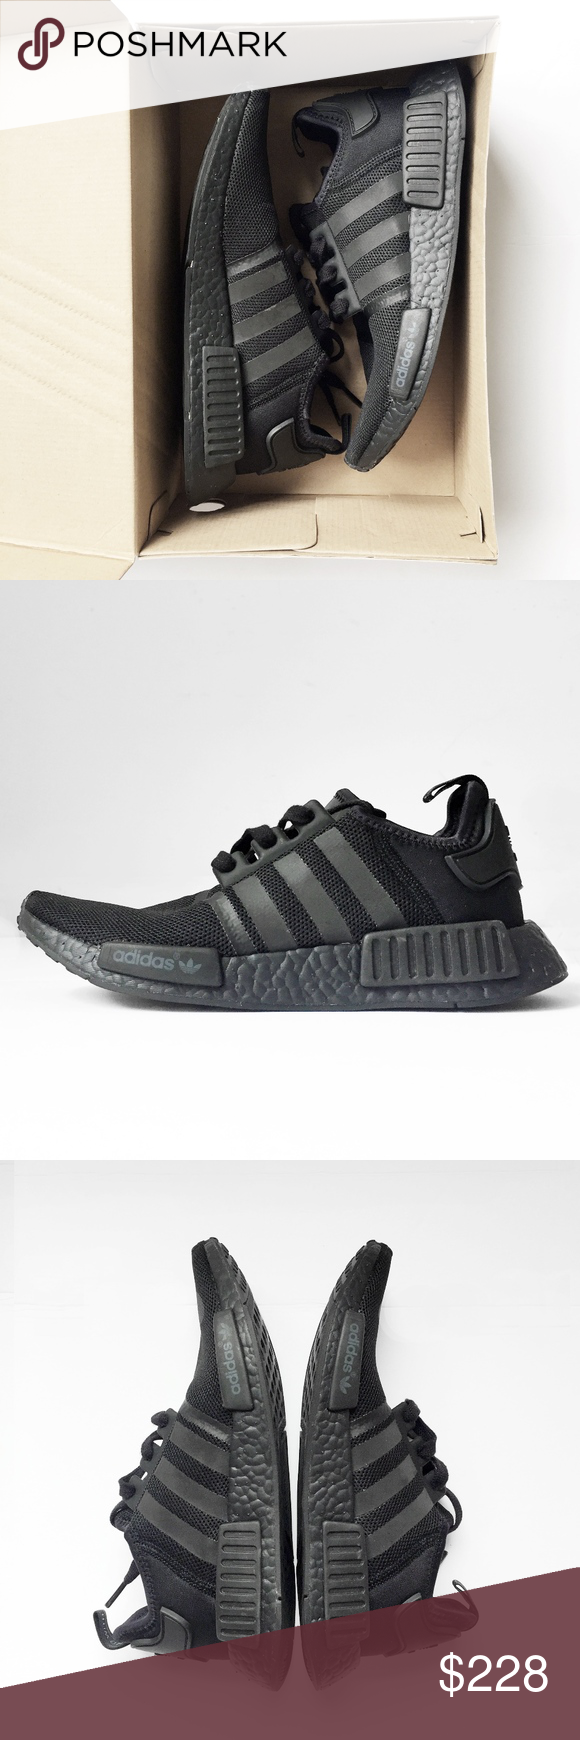 Adidas NMD R1 Boost Triple negro zapatos hombres Triple Black, NMD